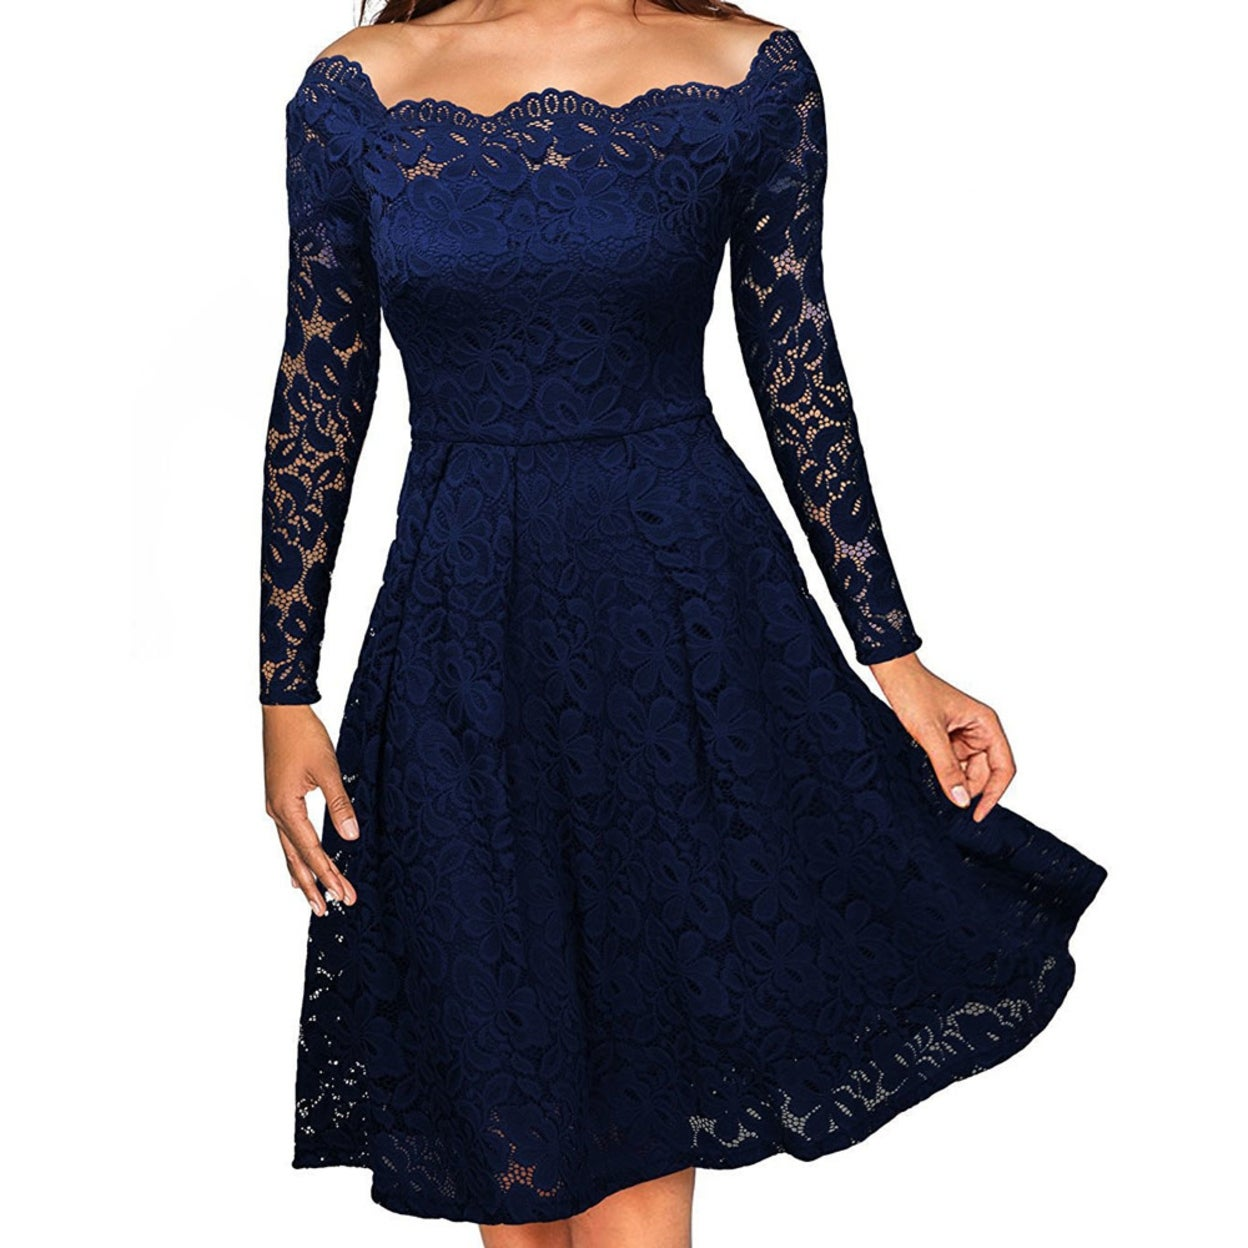 065472e5243f9 Shop 2017 Elegant Lace off shoulder dress Solid long sleeve A-Line Fashion  Sexy Slim Party Dresses Plus size S-XXL - Free Shipping On Orders Over  45  ...